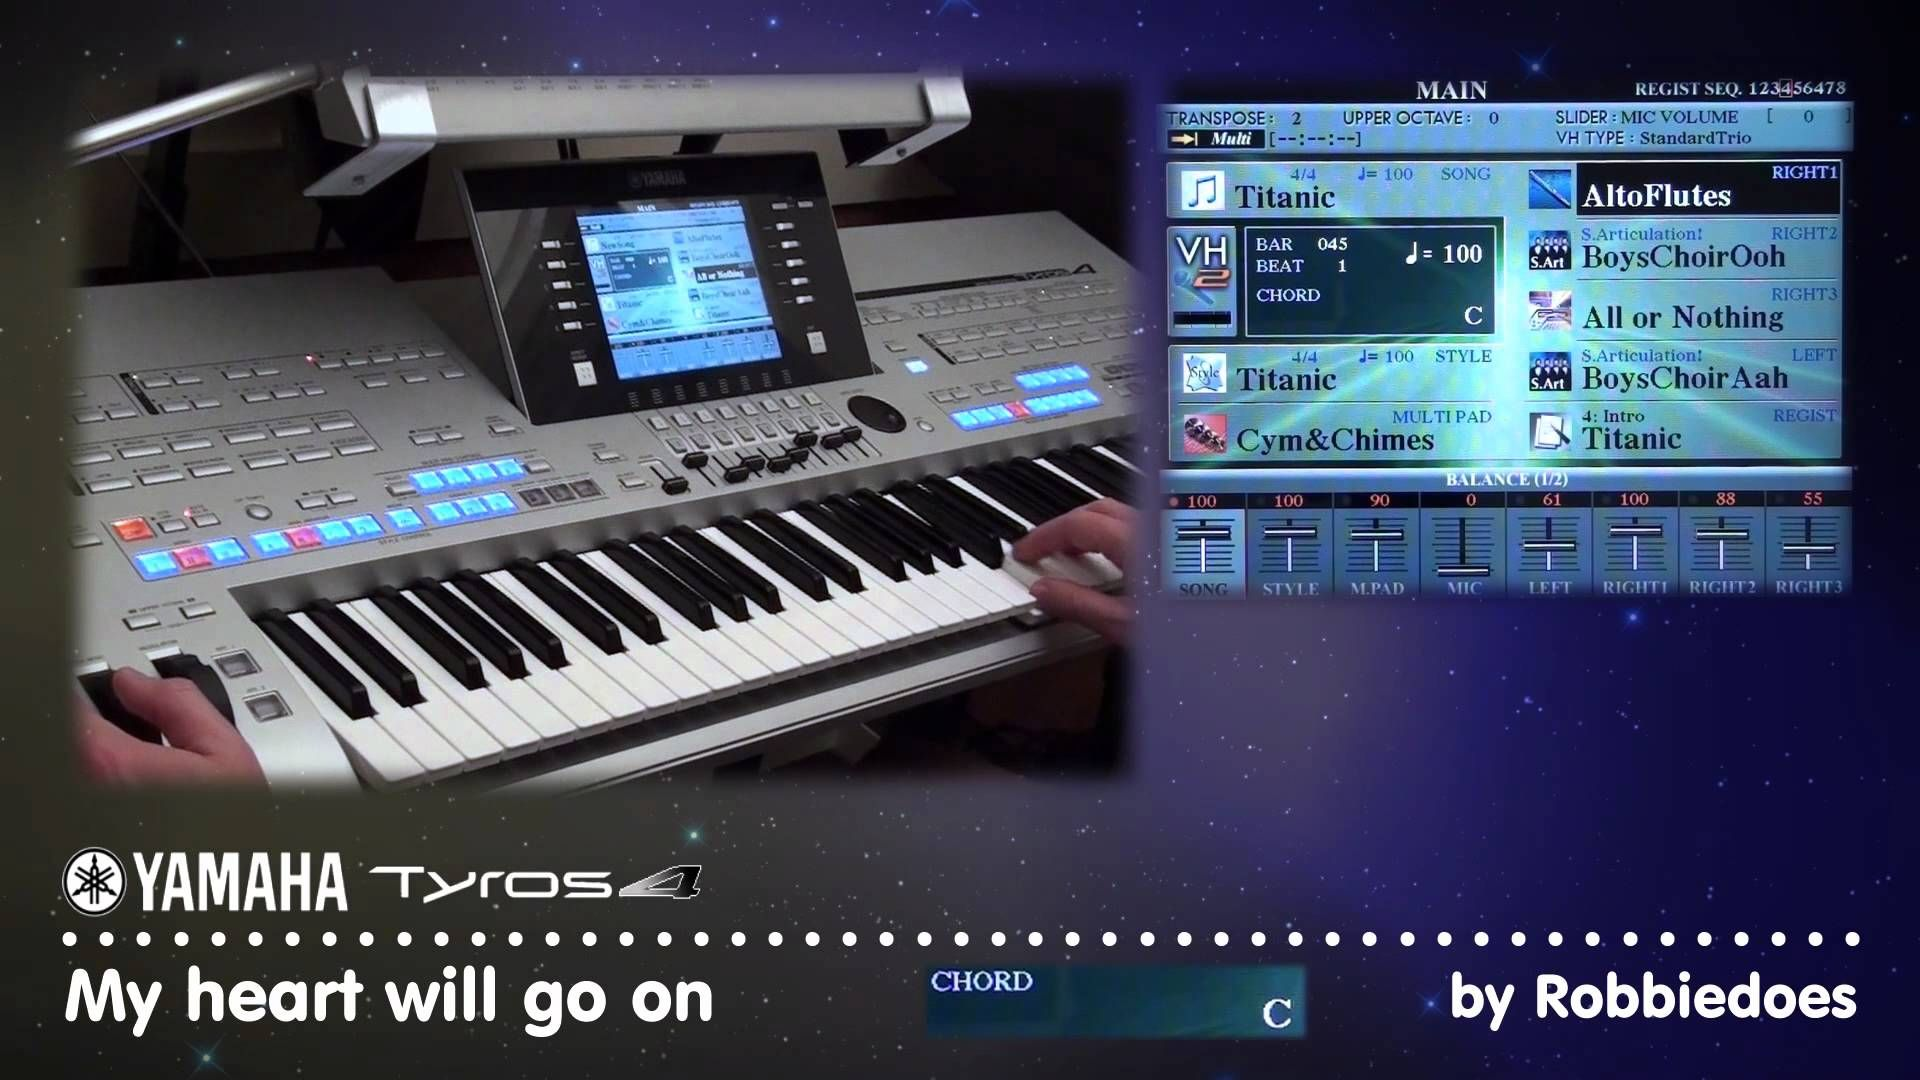 Tyros 4: My heart will go on - Celine Dion | music on key board